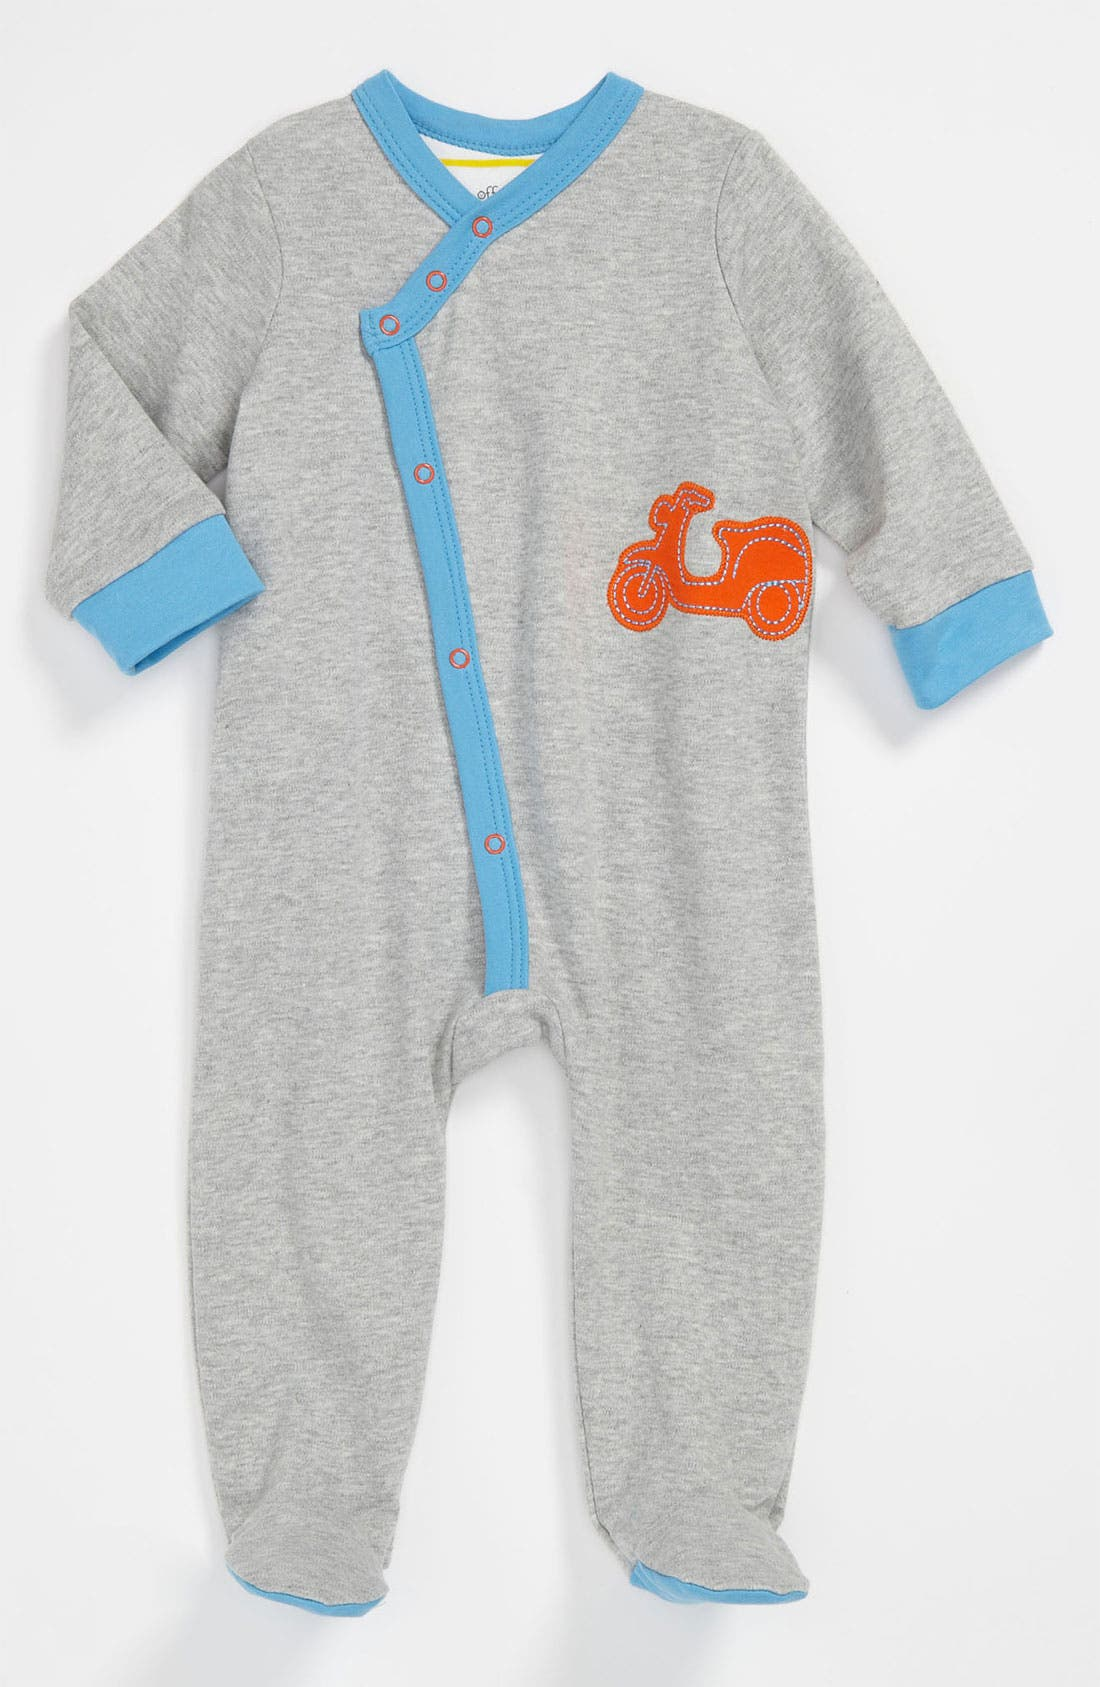 Main Image - Offspring 'Wheels' Footie (Baby)